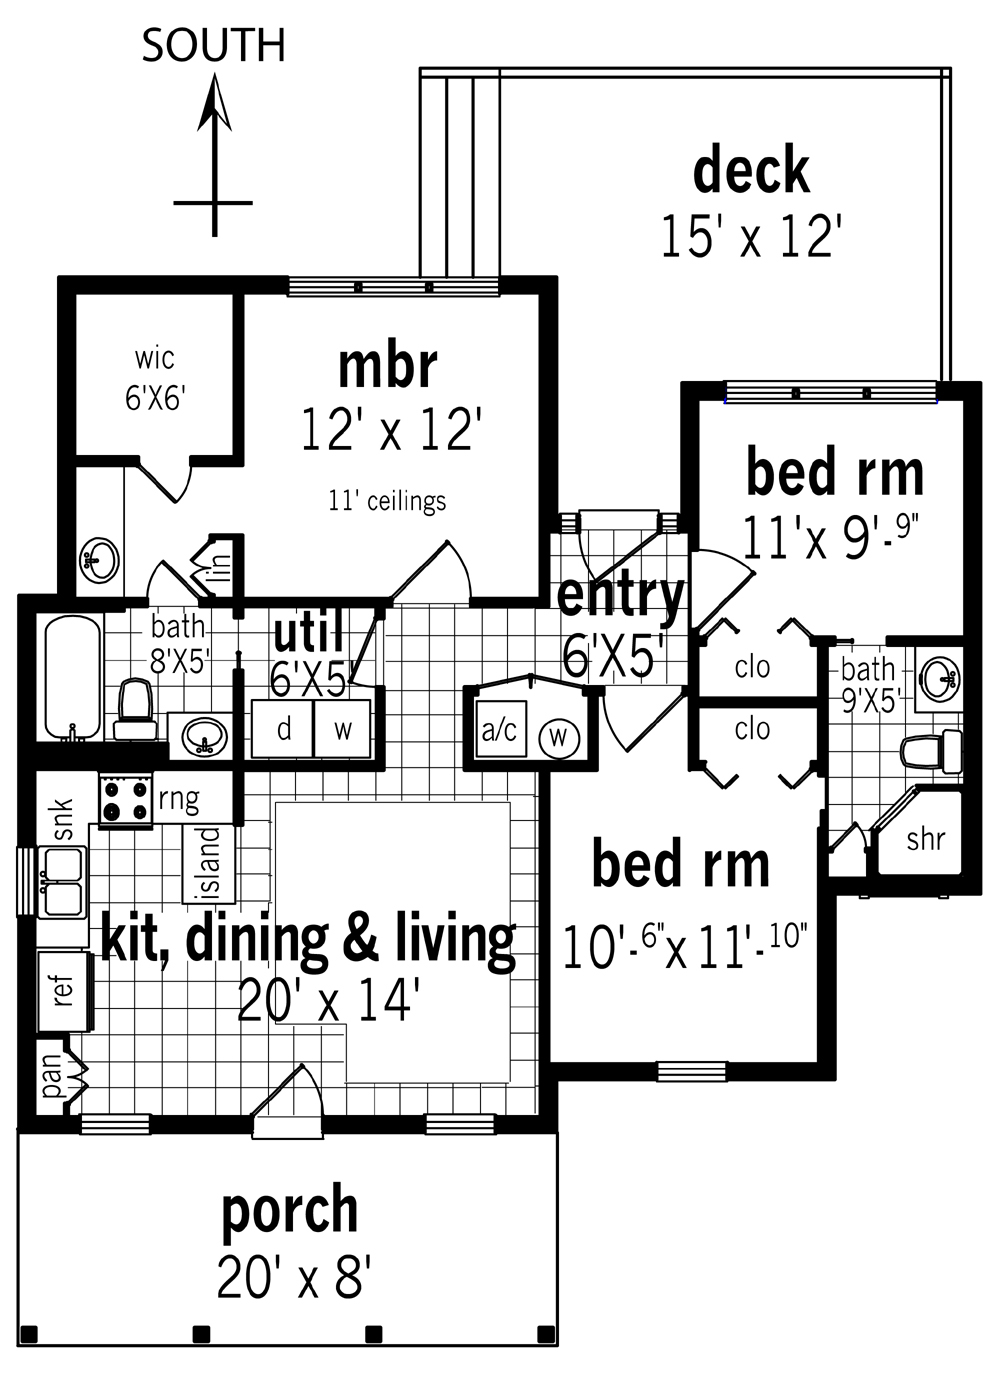 House plan with furniture - Floor Plan